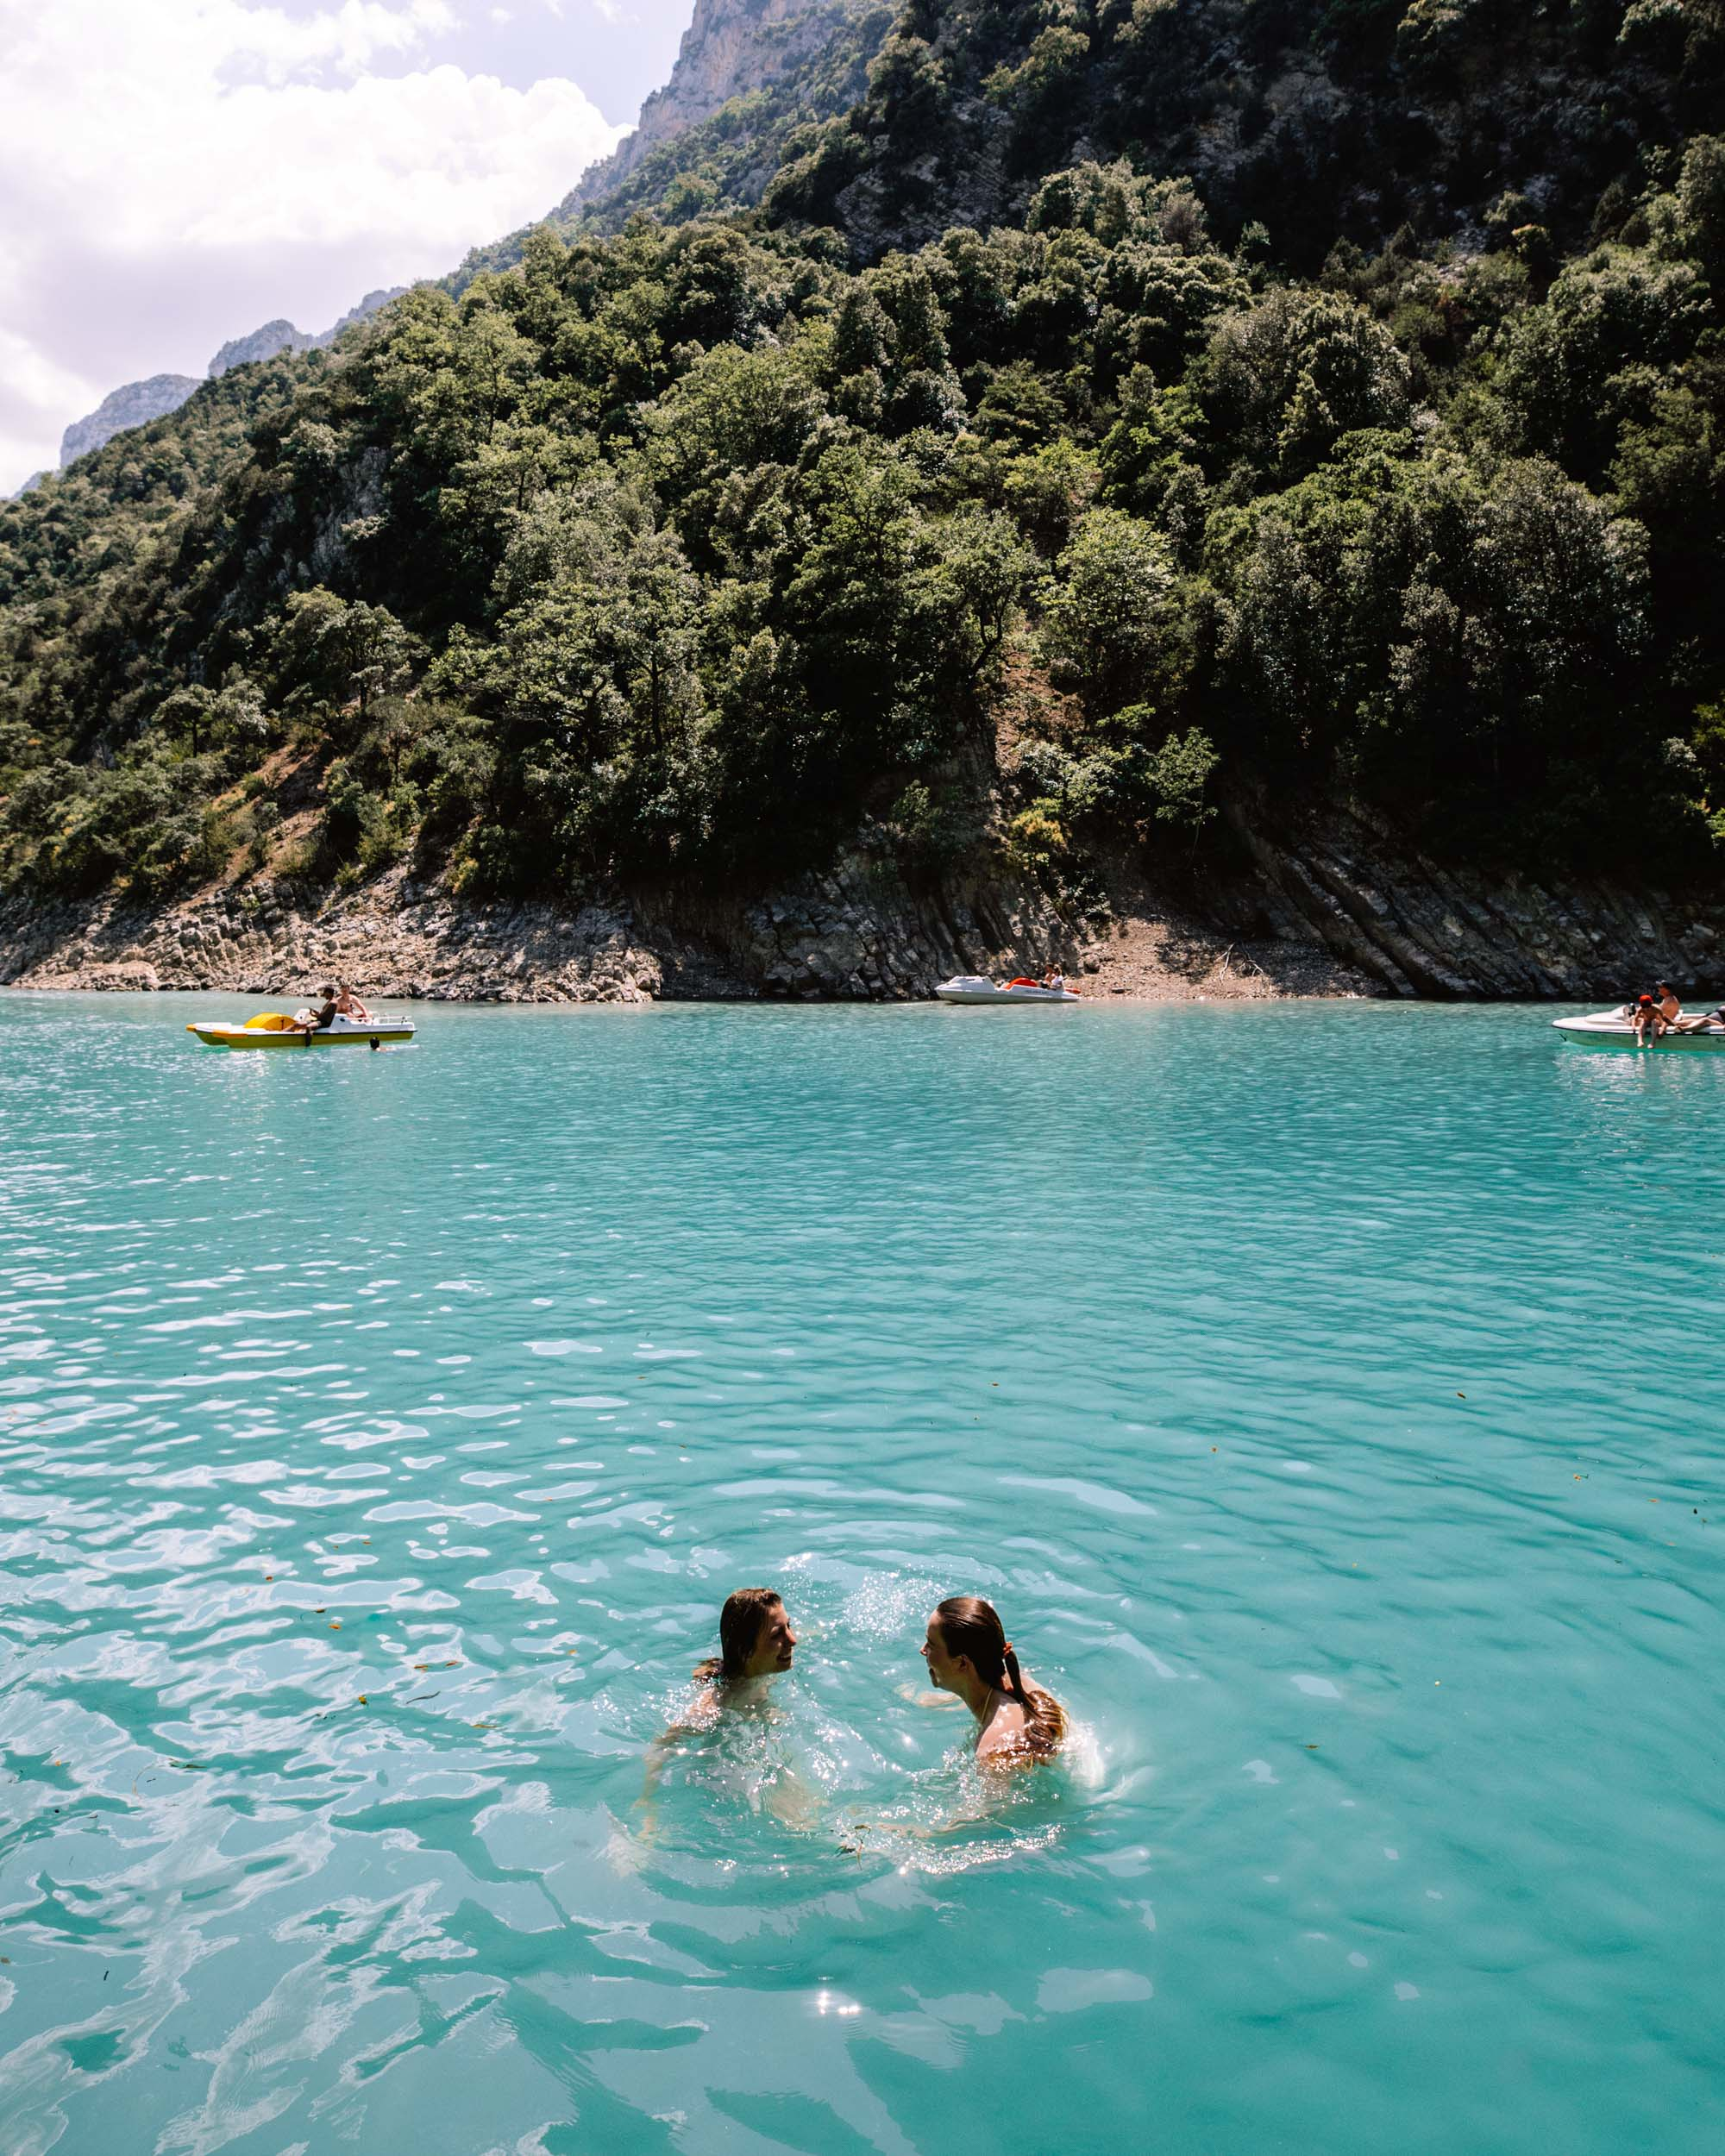 Swimming at the Gorges du Verdon in the South of France via Find Us Lost